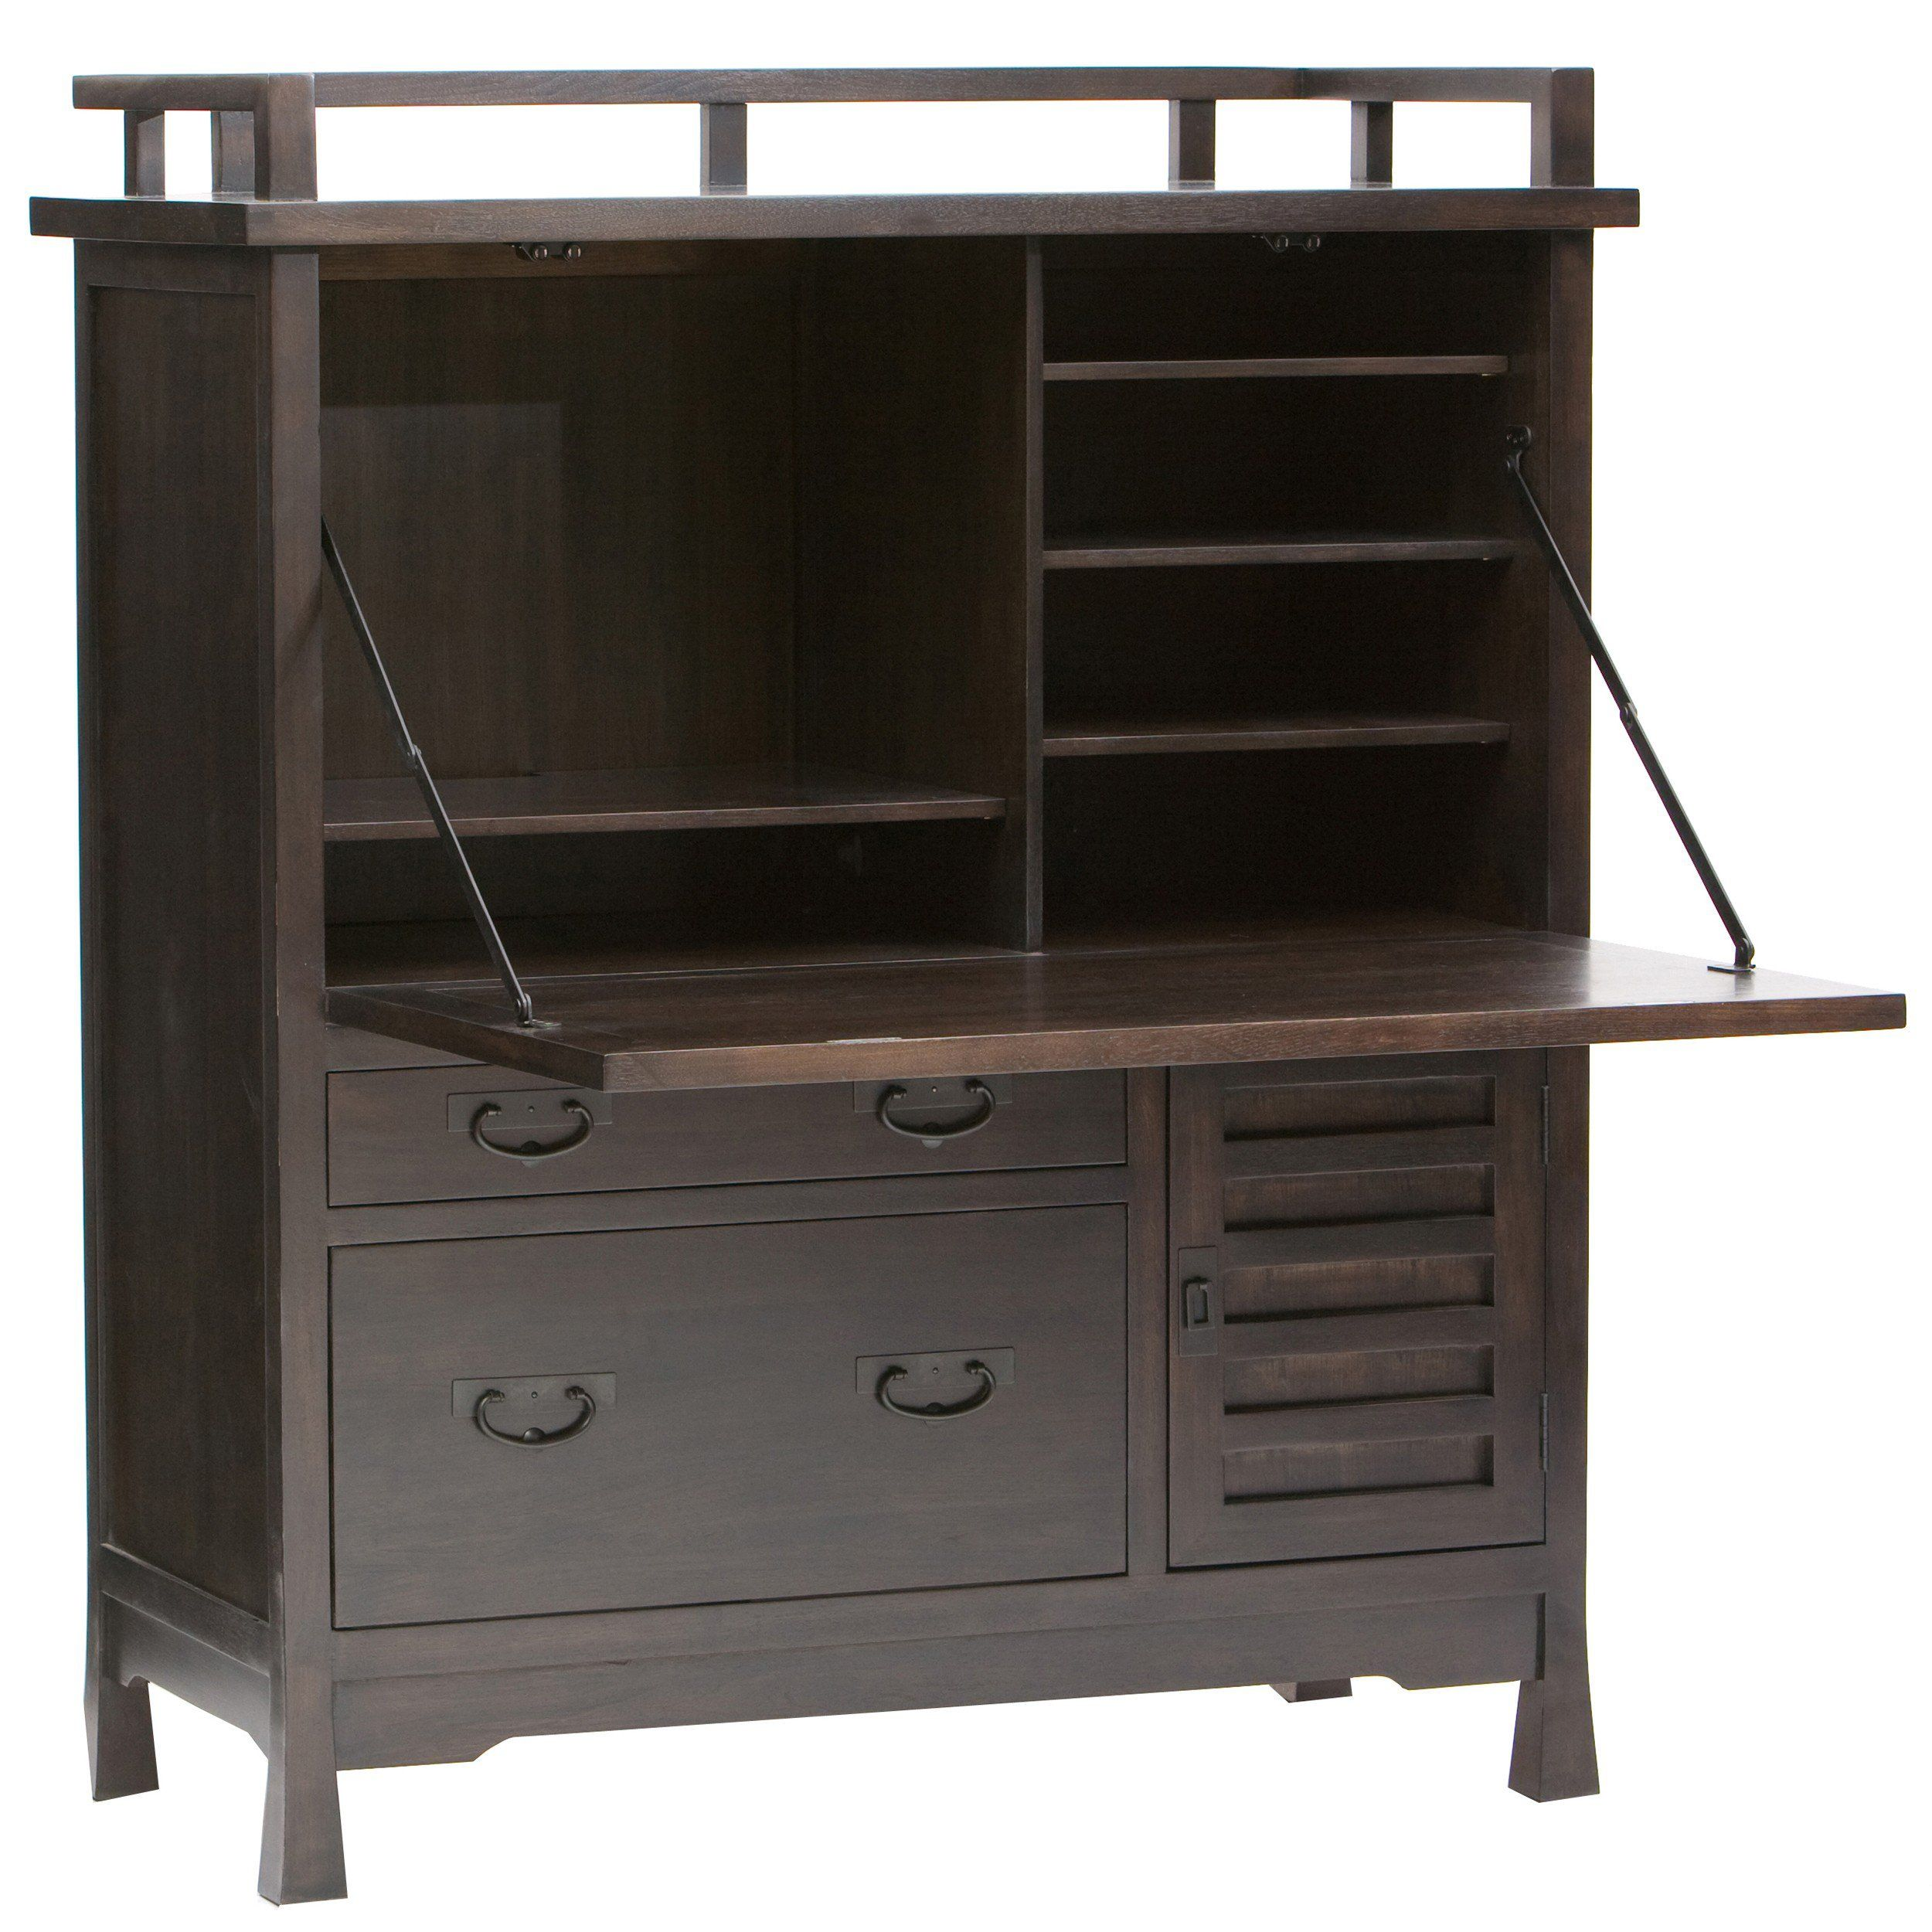 compact office furniture. Shinto Compact Office Armoire - Furniture Desks F